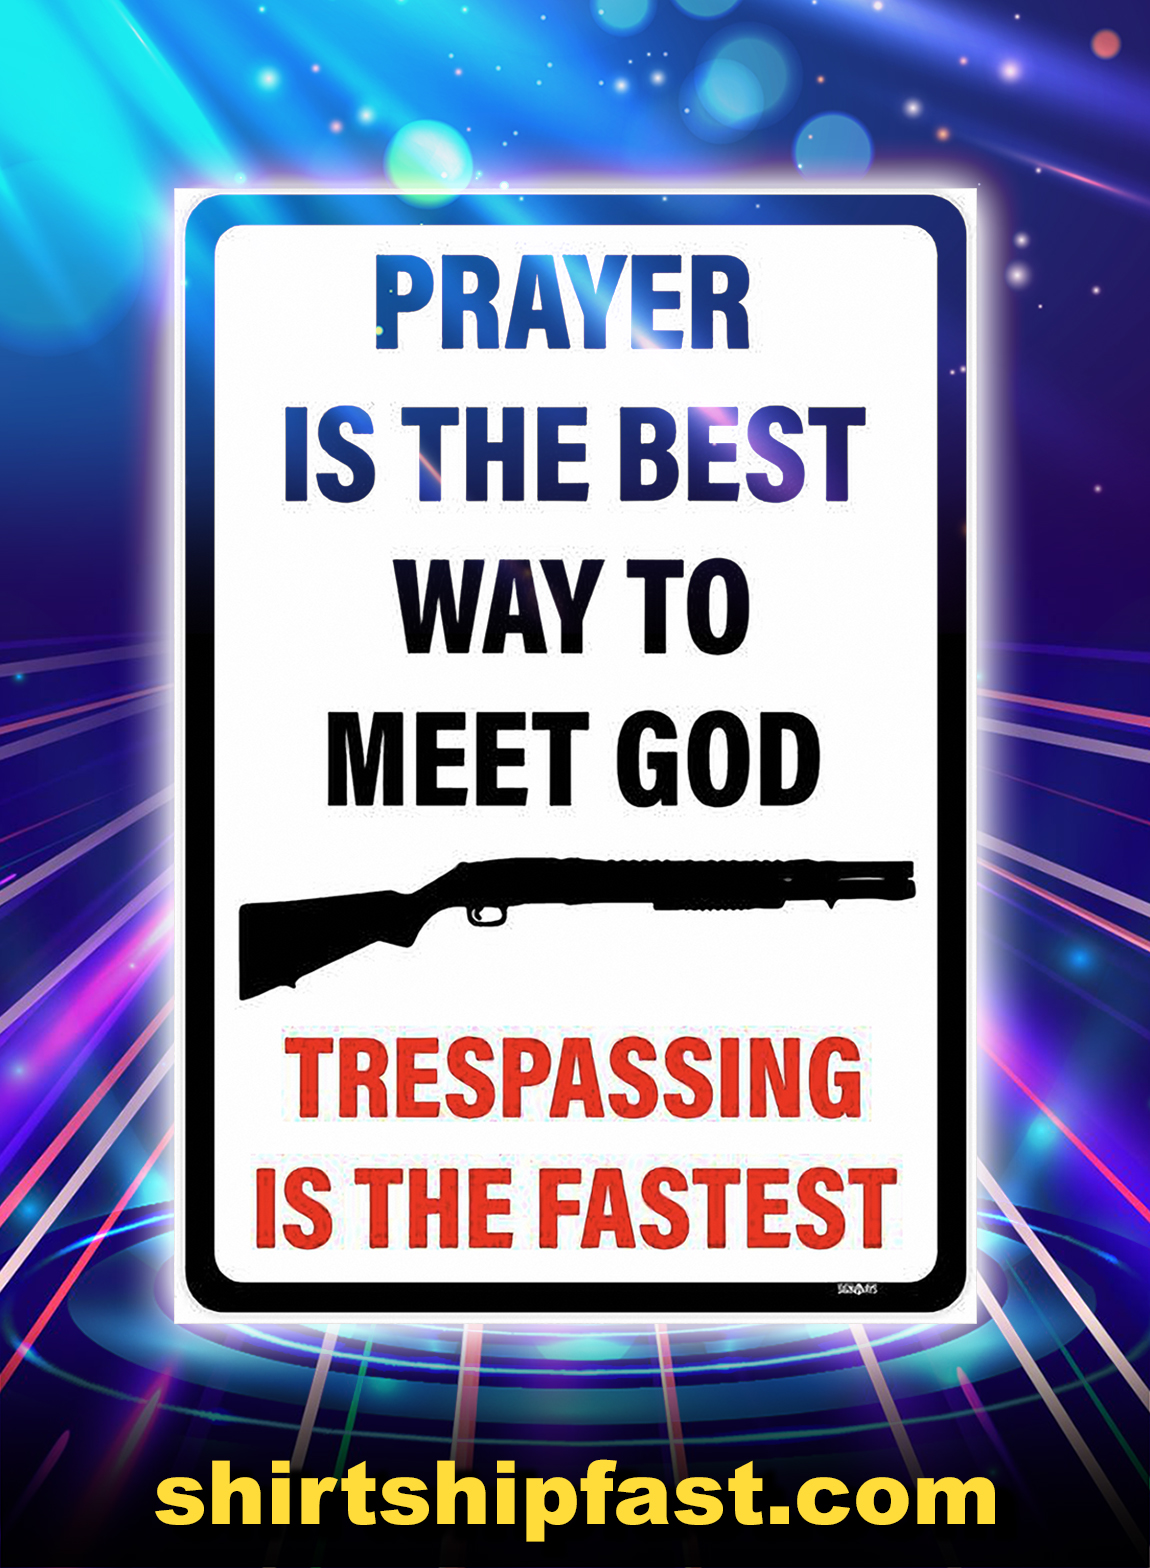 Prayer is the best way to meet god trespassing is the fastest sign poster - A3